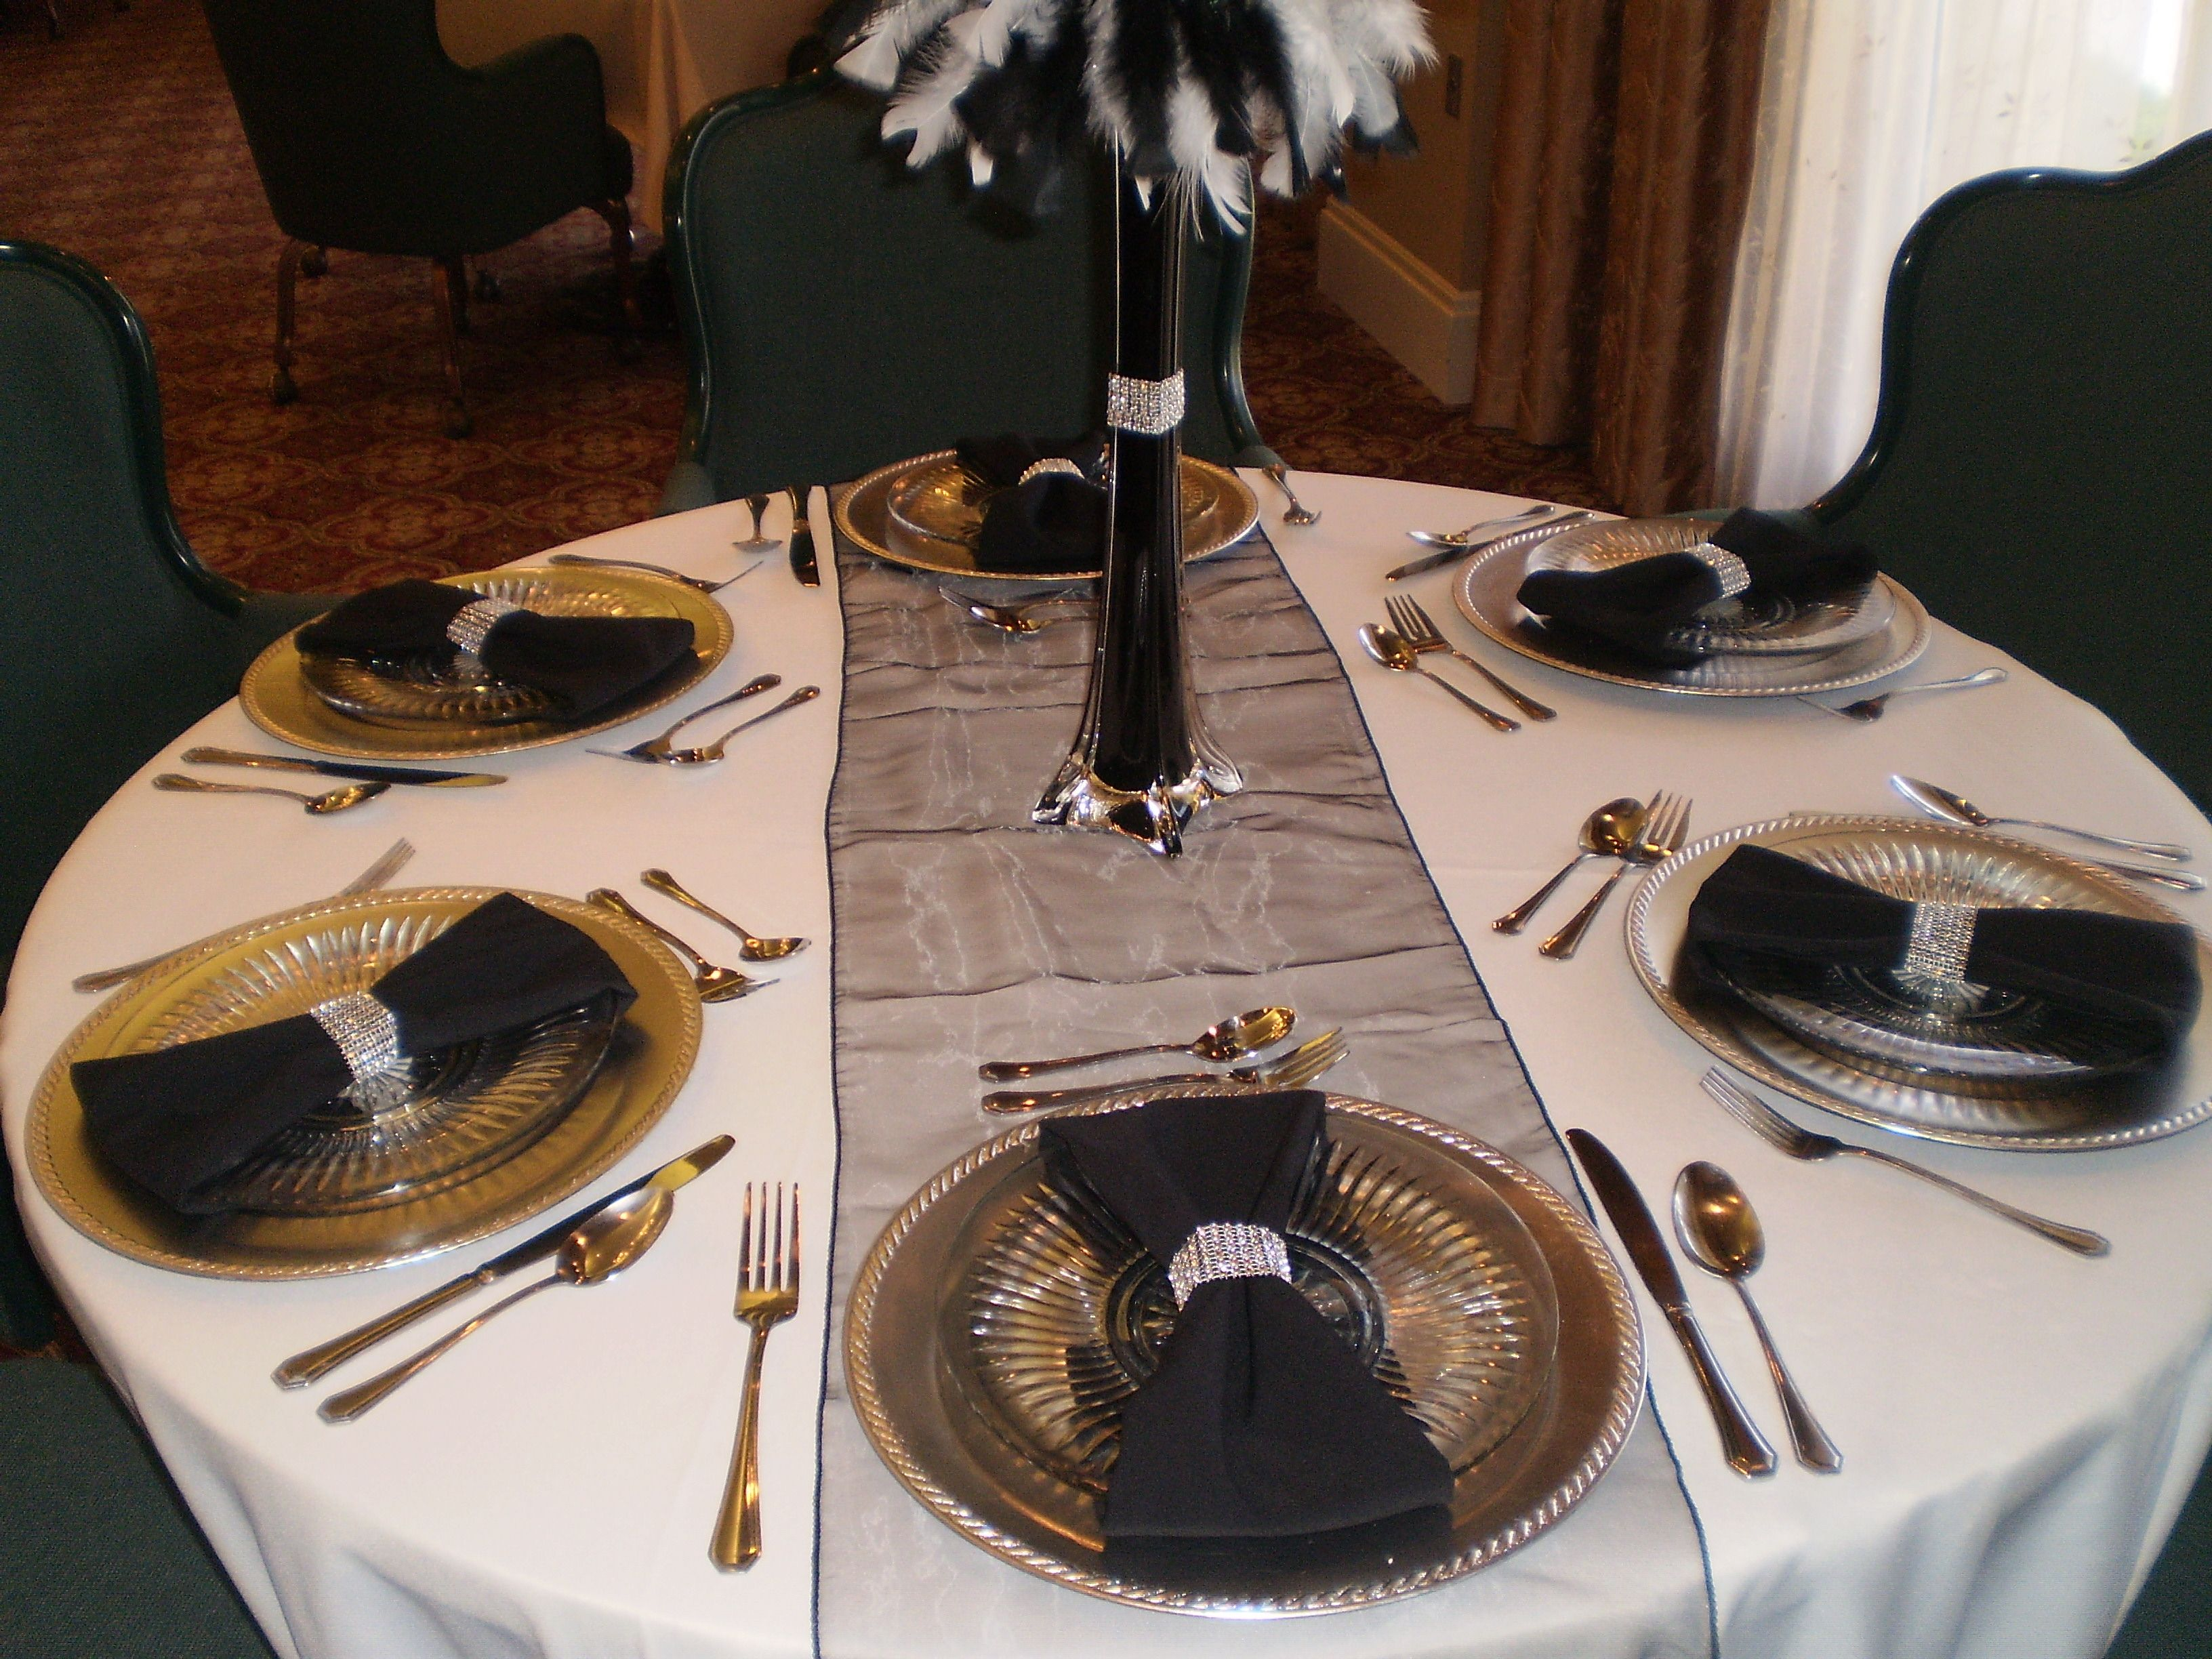 Black u0026 Silver table settings. Eiffel tower vase with feathers u0026 a table runner pull this look together. & Black u0026 Silver table settings. Eiffel tower vase with feathers u0026 a ...